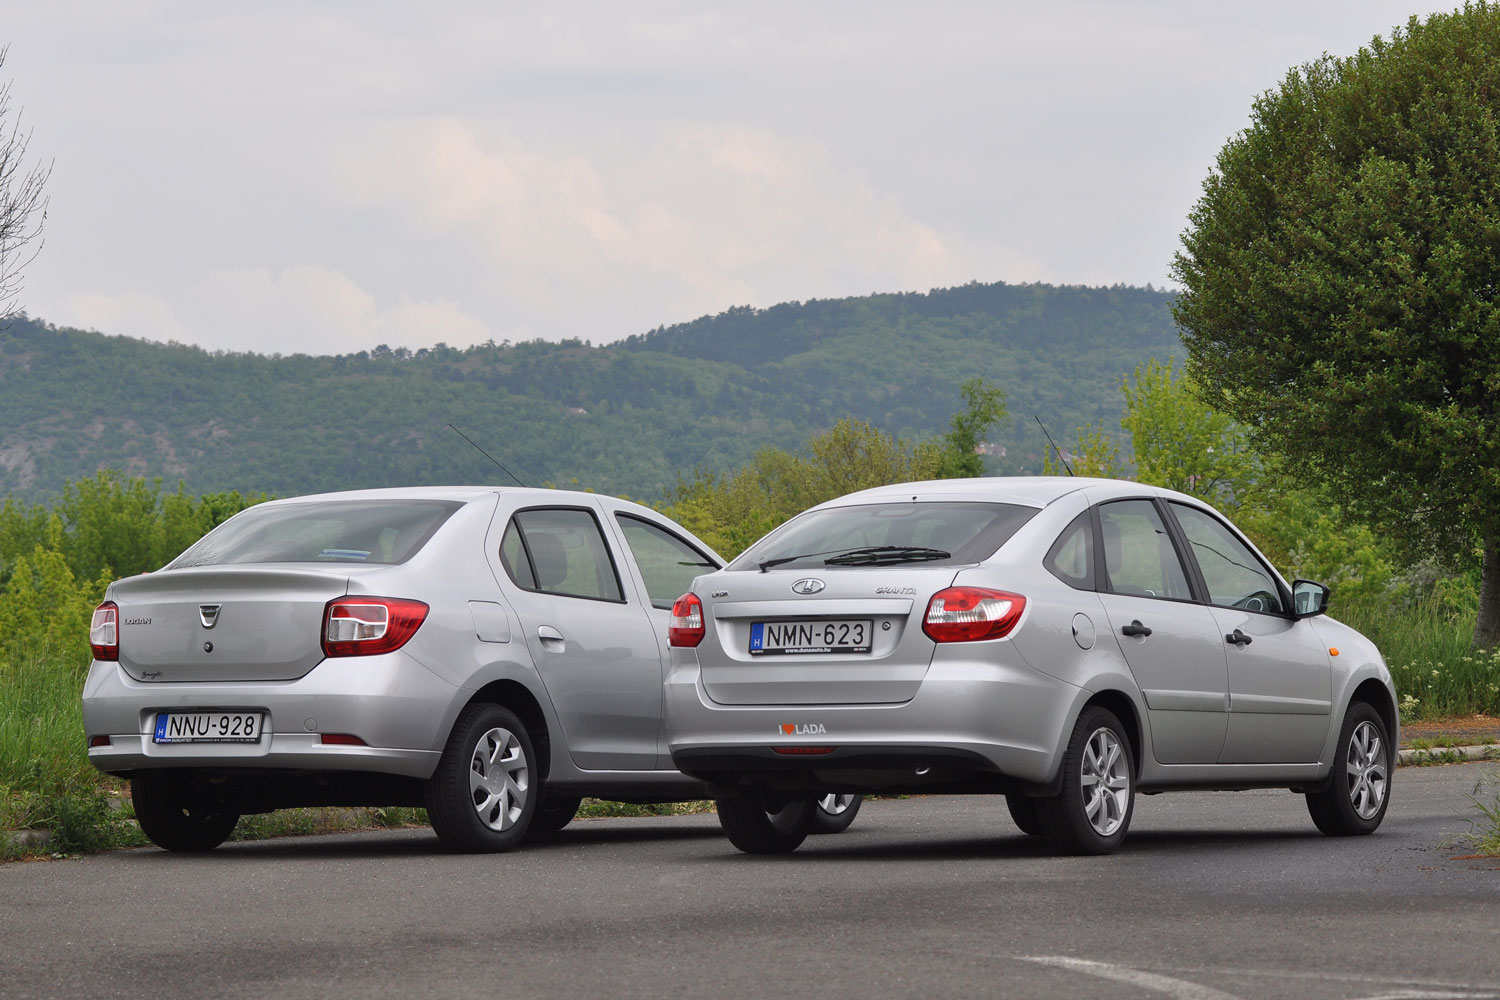 renault logan new vs lada granta liftback